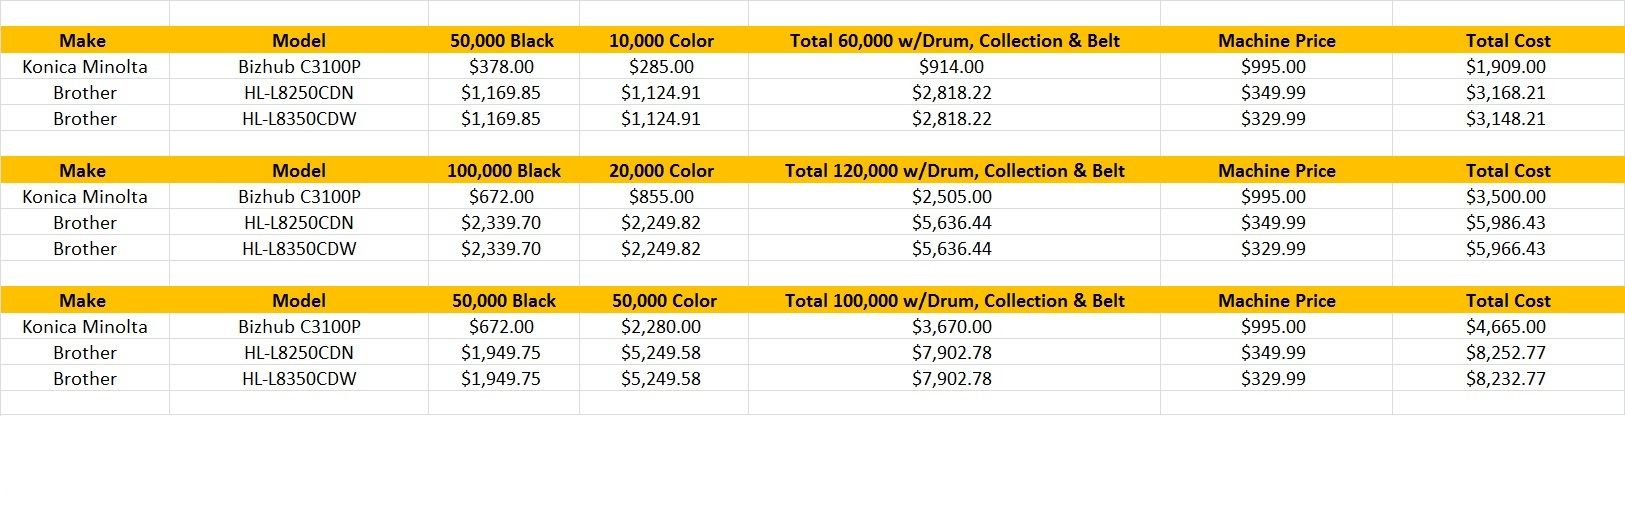 Color Printer Comparison | Statewide Office Systems